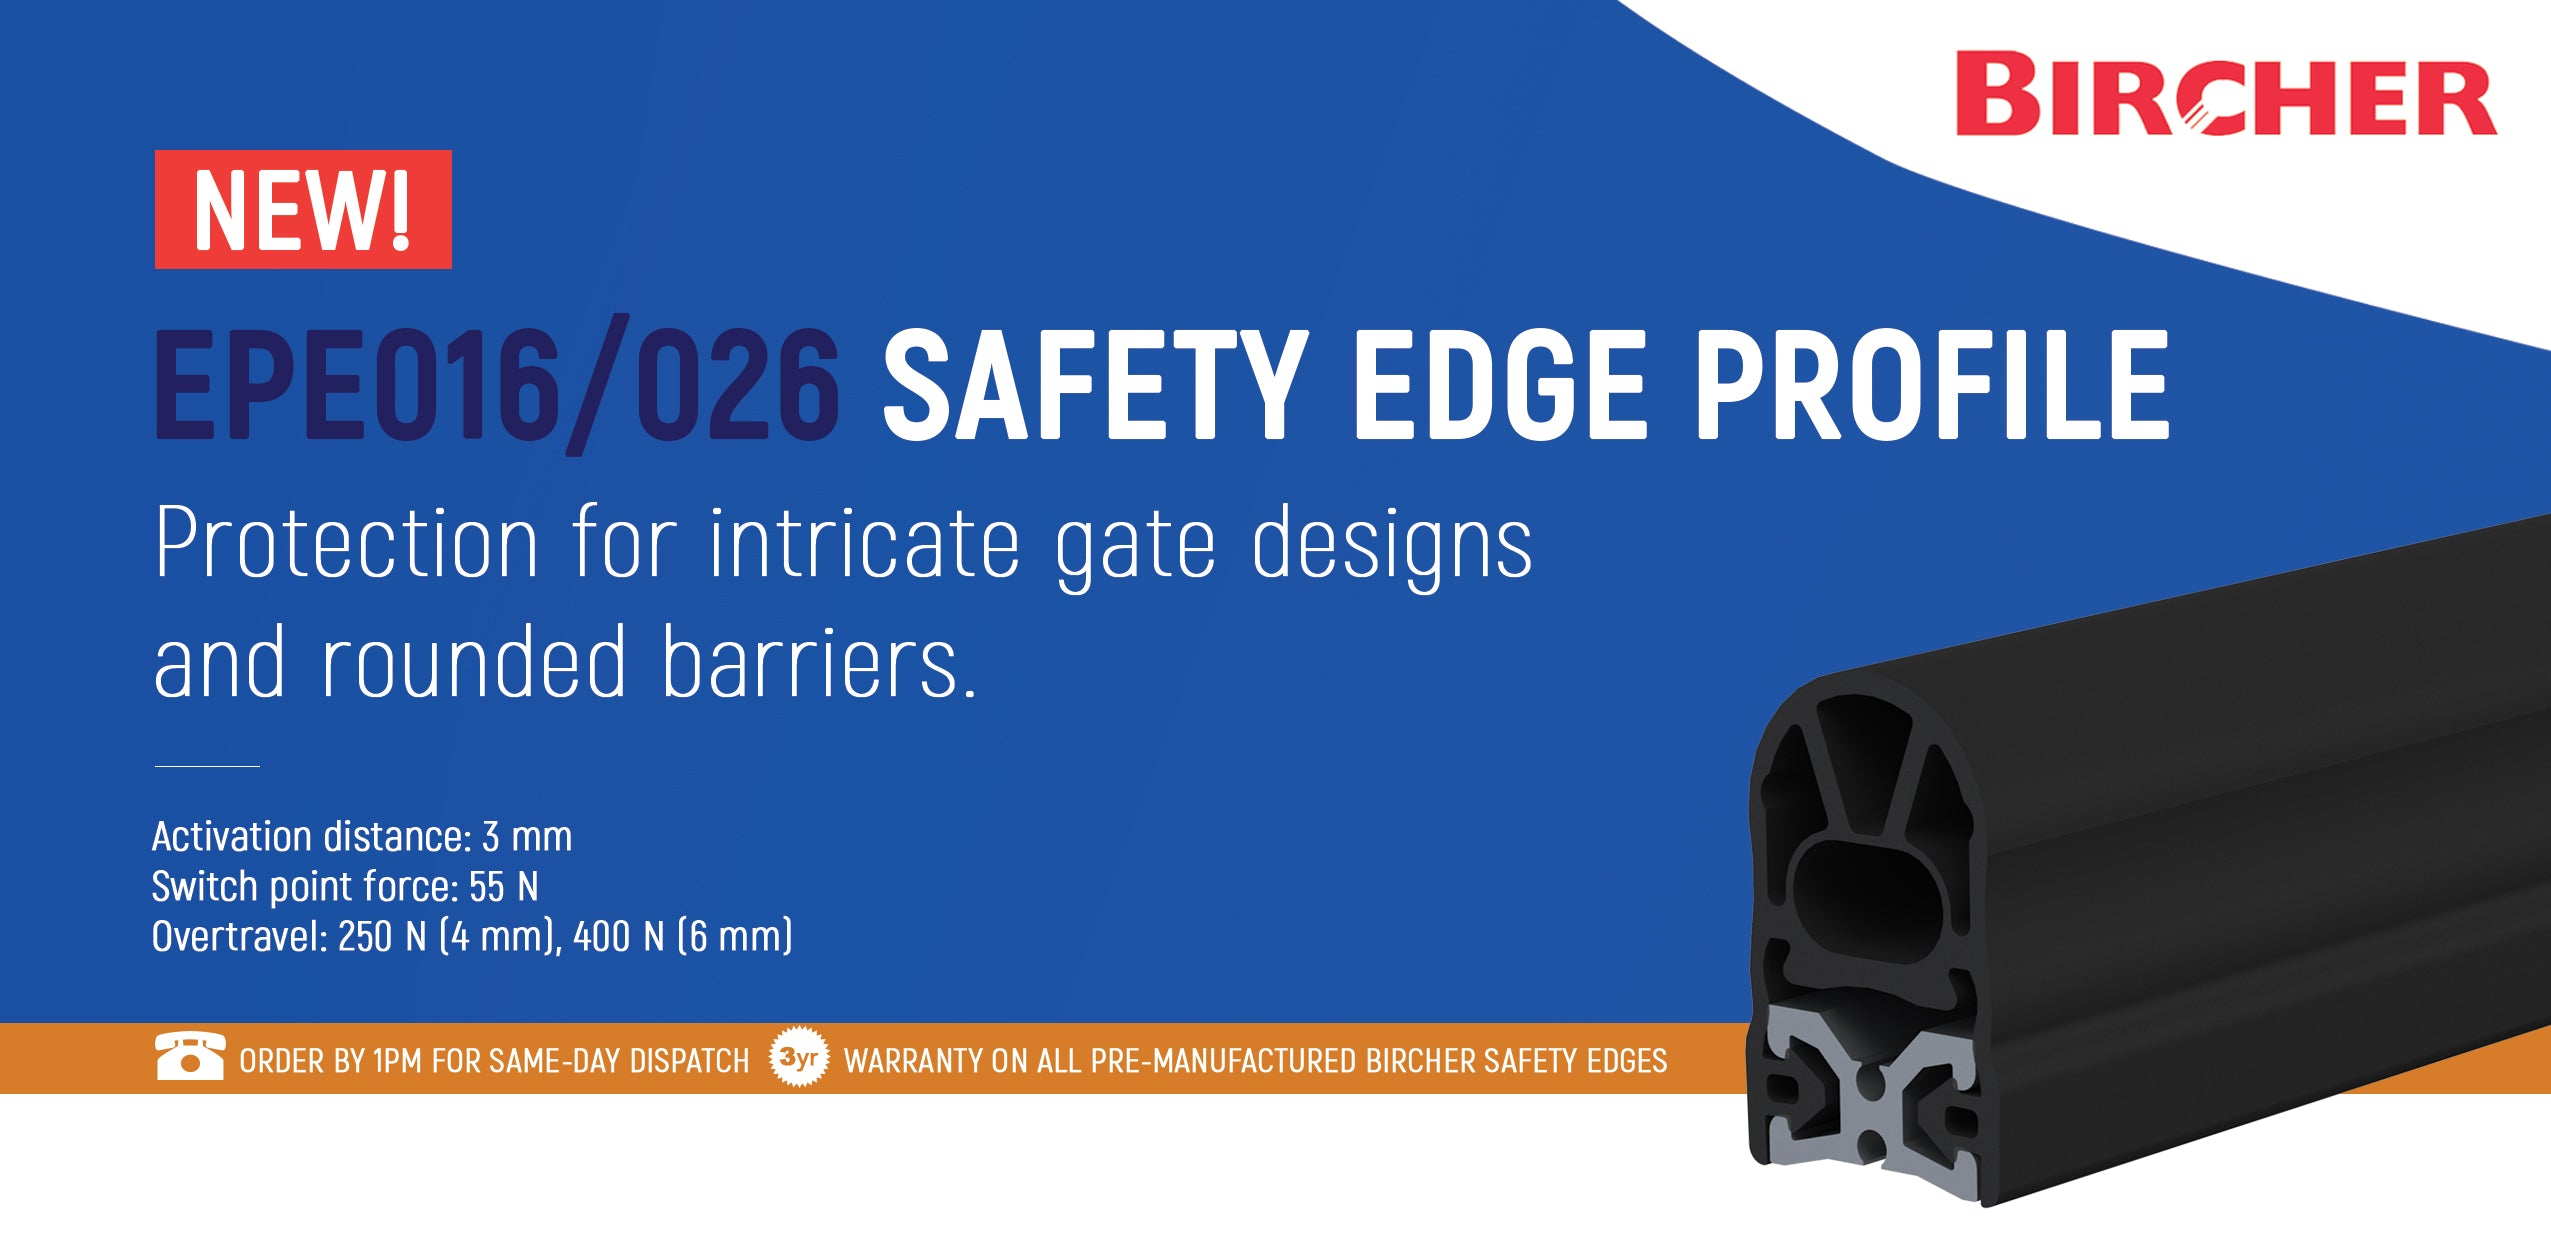 016/026 Safety Edge Profile for Barriers